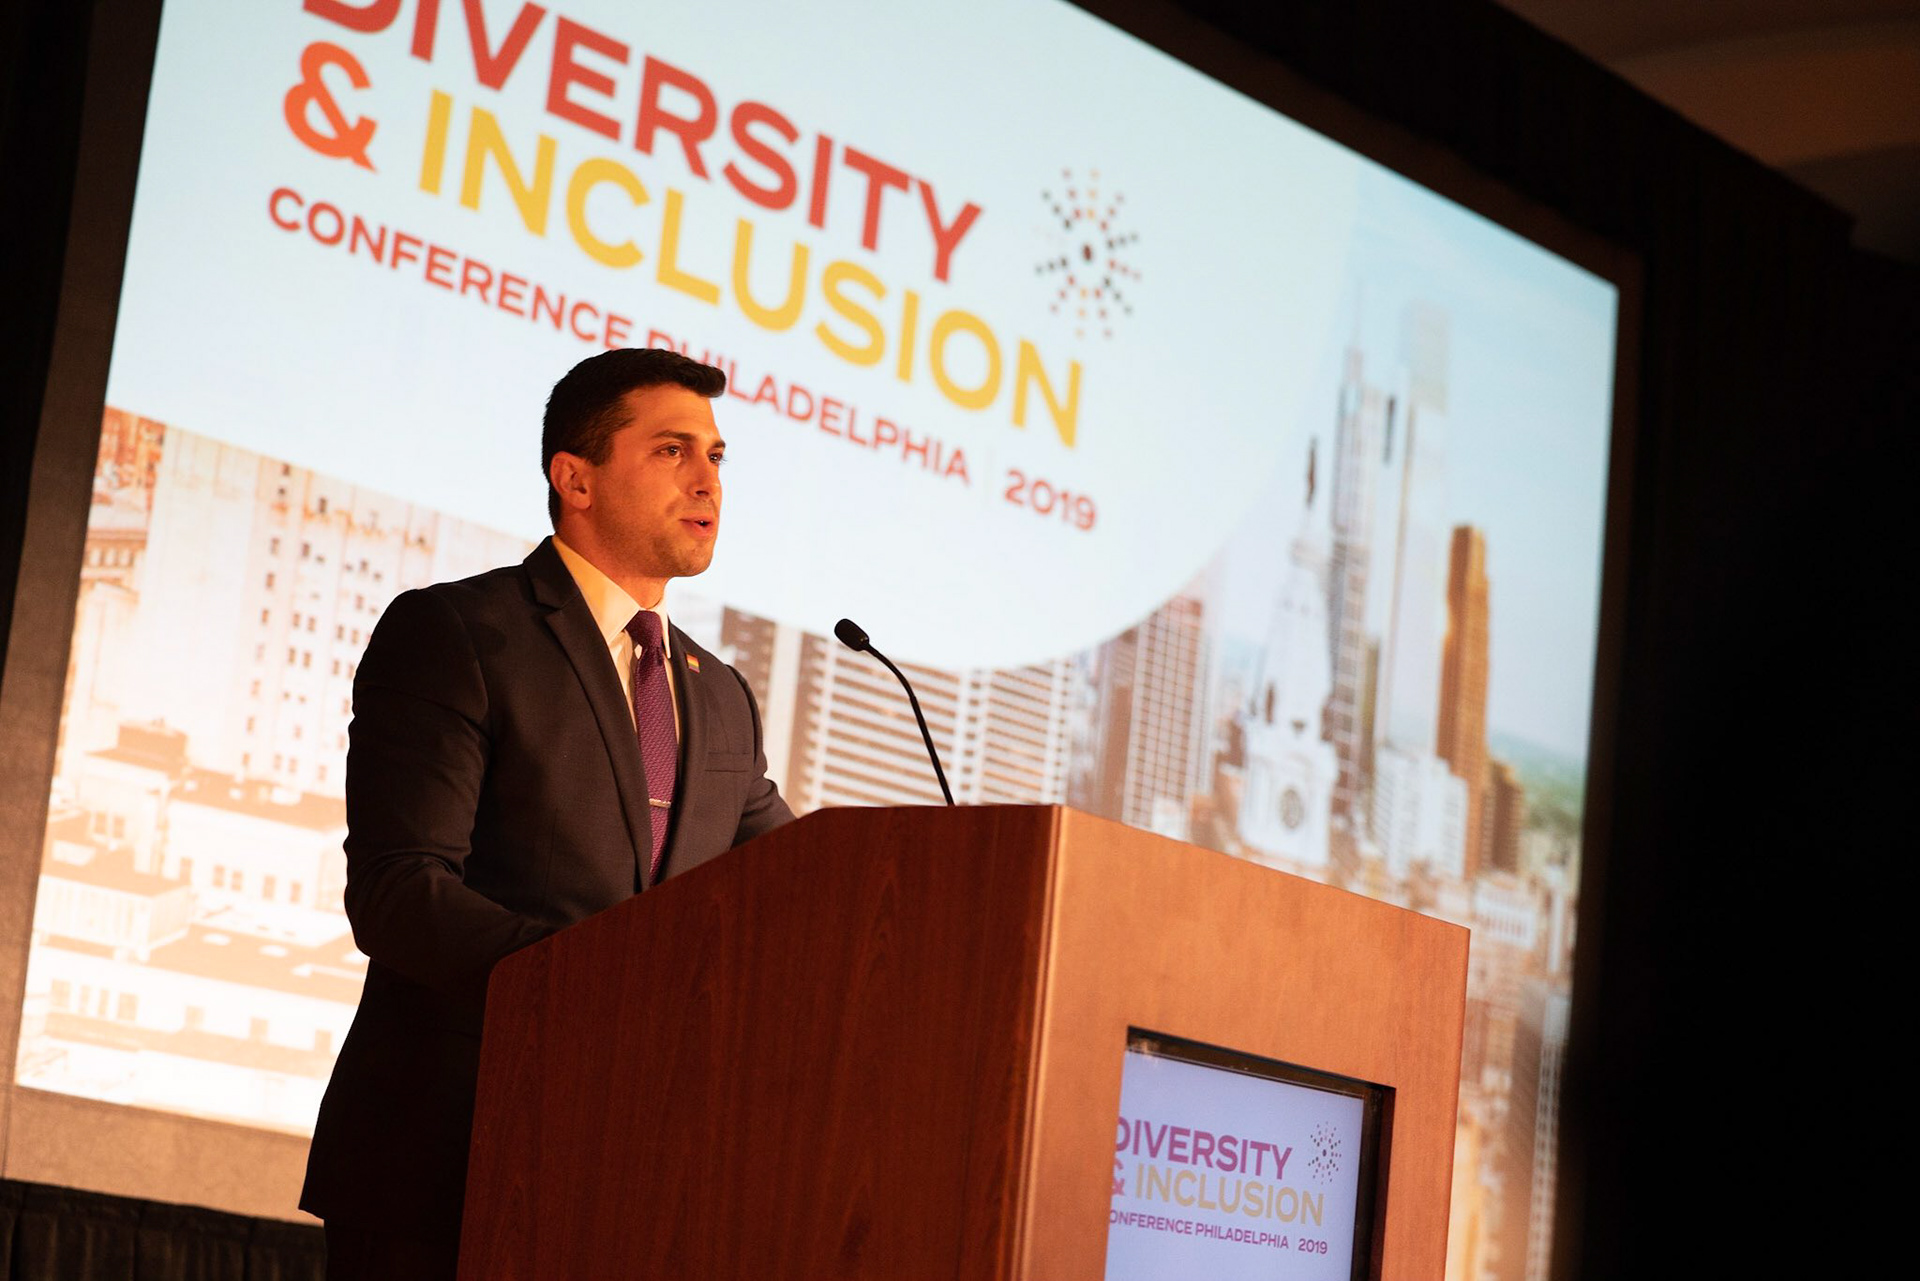 Jonathan Lovitz behind a podium, speaking at the Diversity and Inclusion conference in Philadelphia